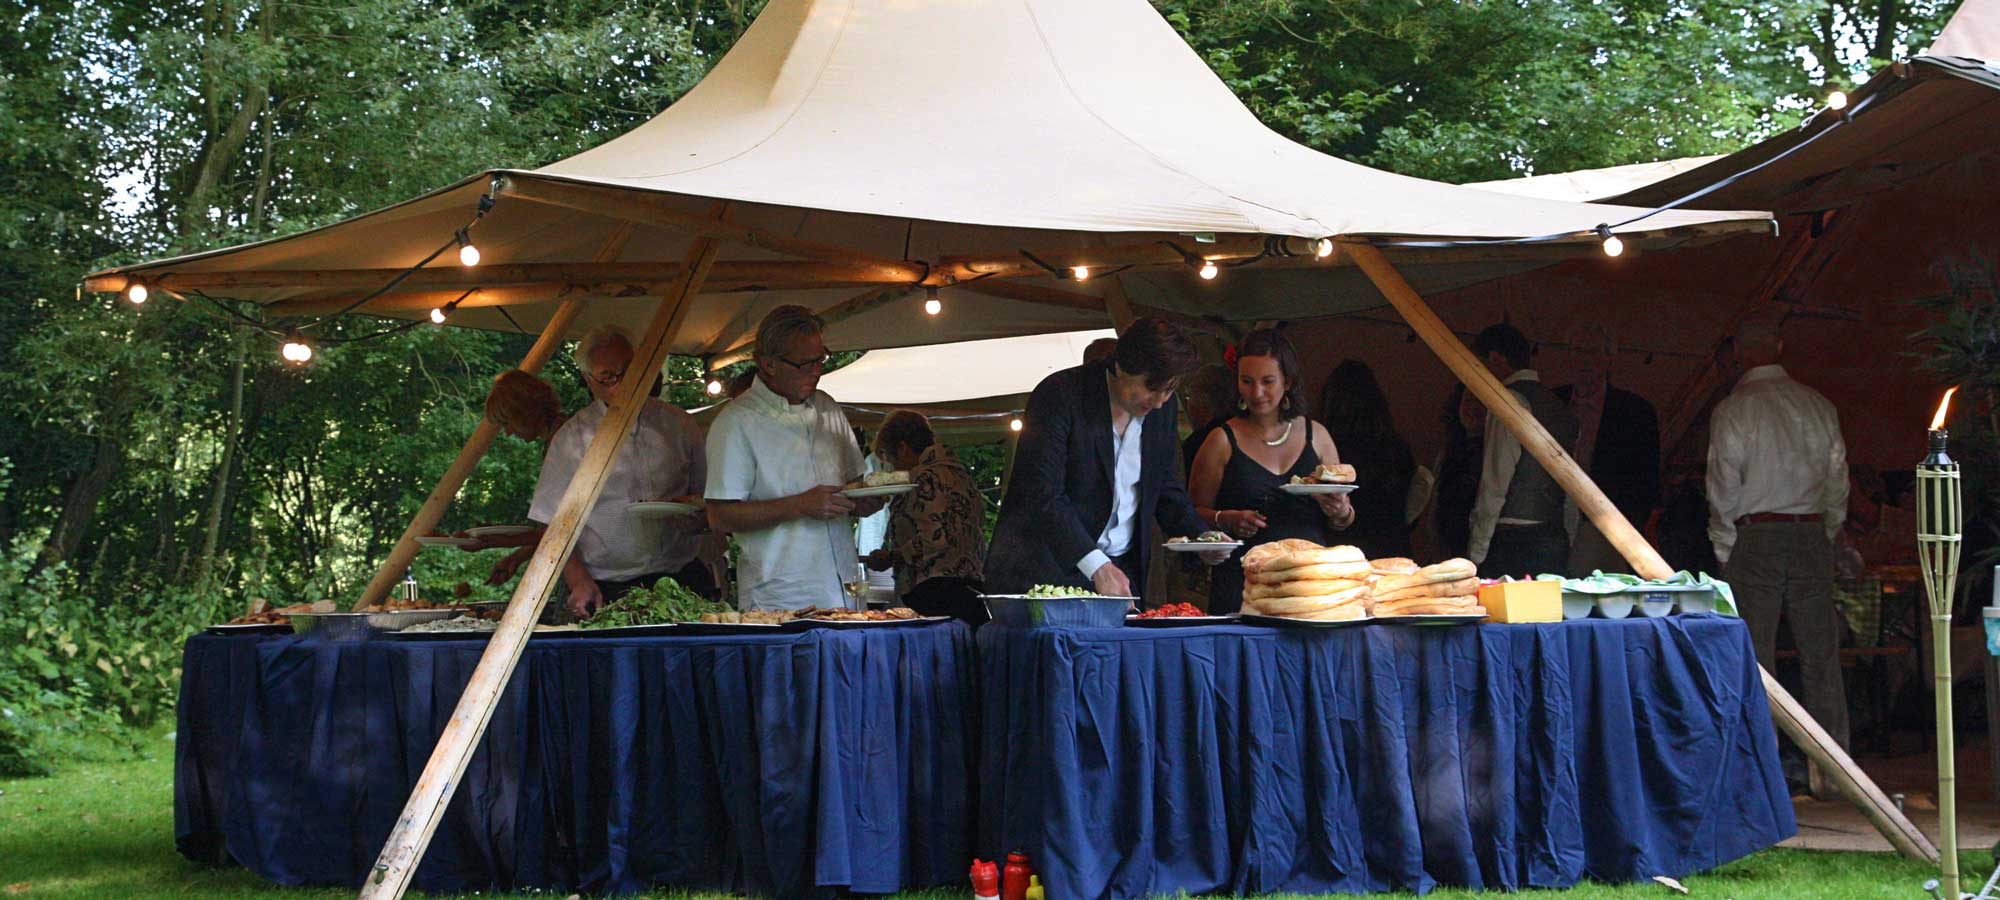 Tentipi Nimbus serving station - purchase event tipi